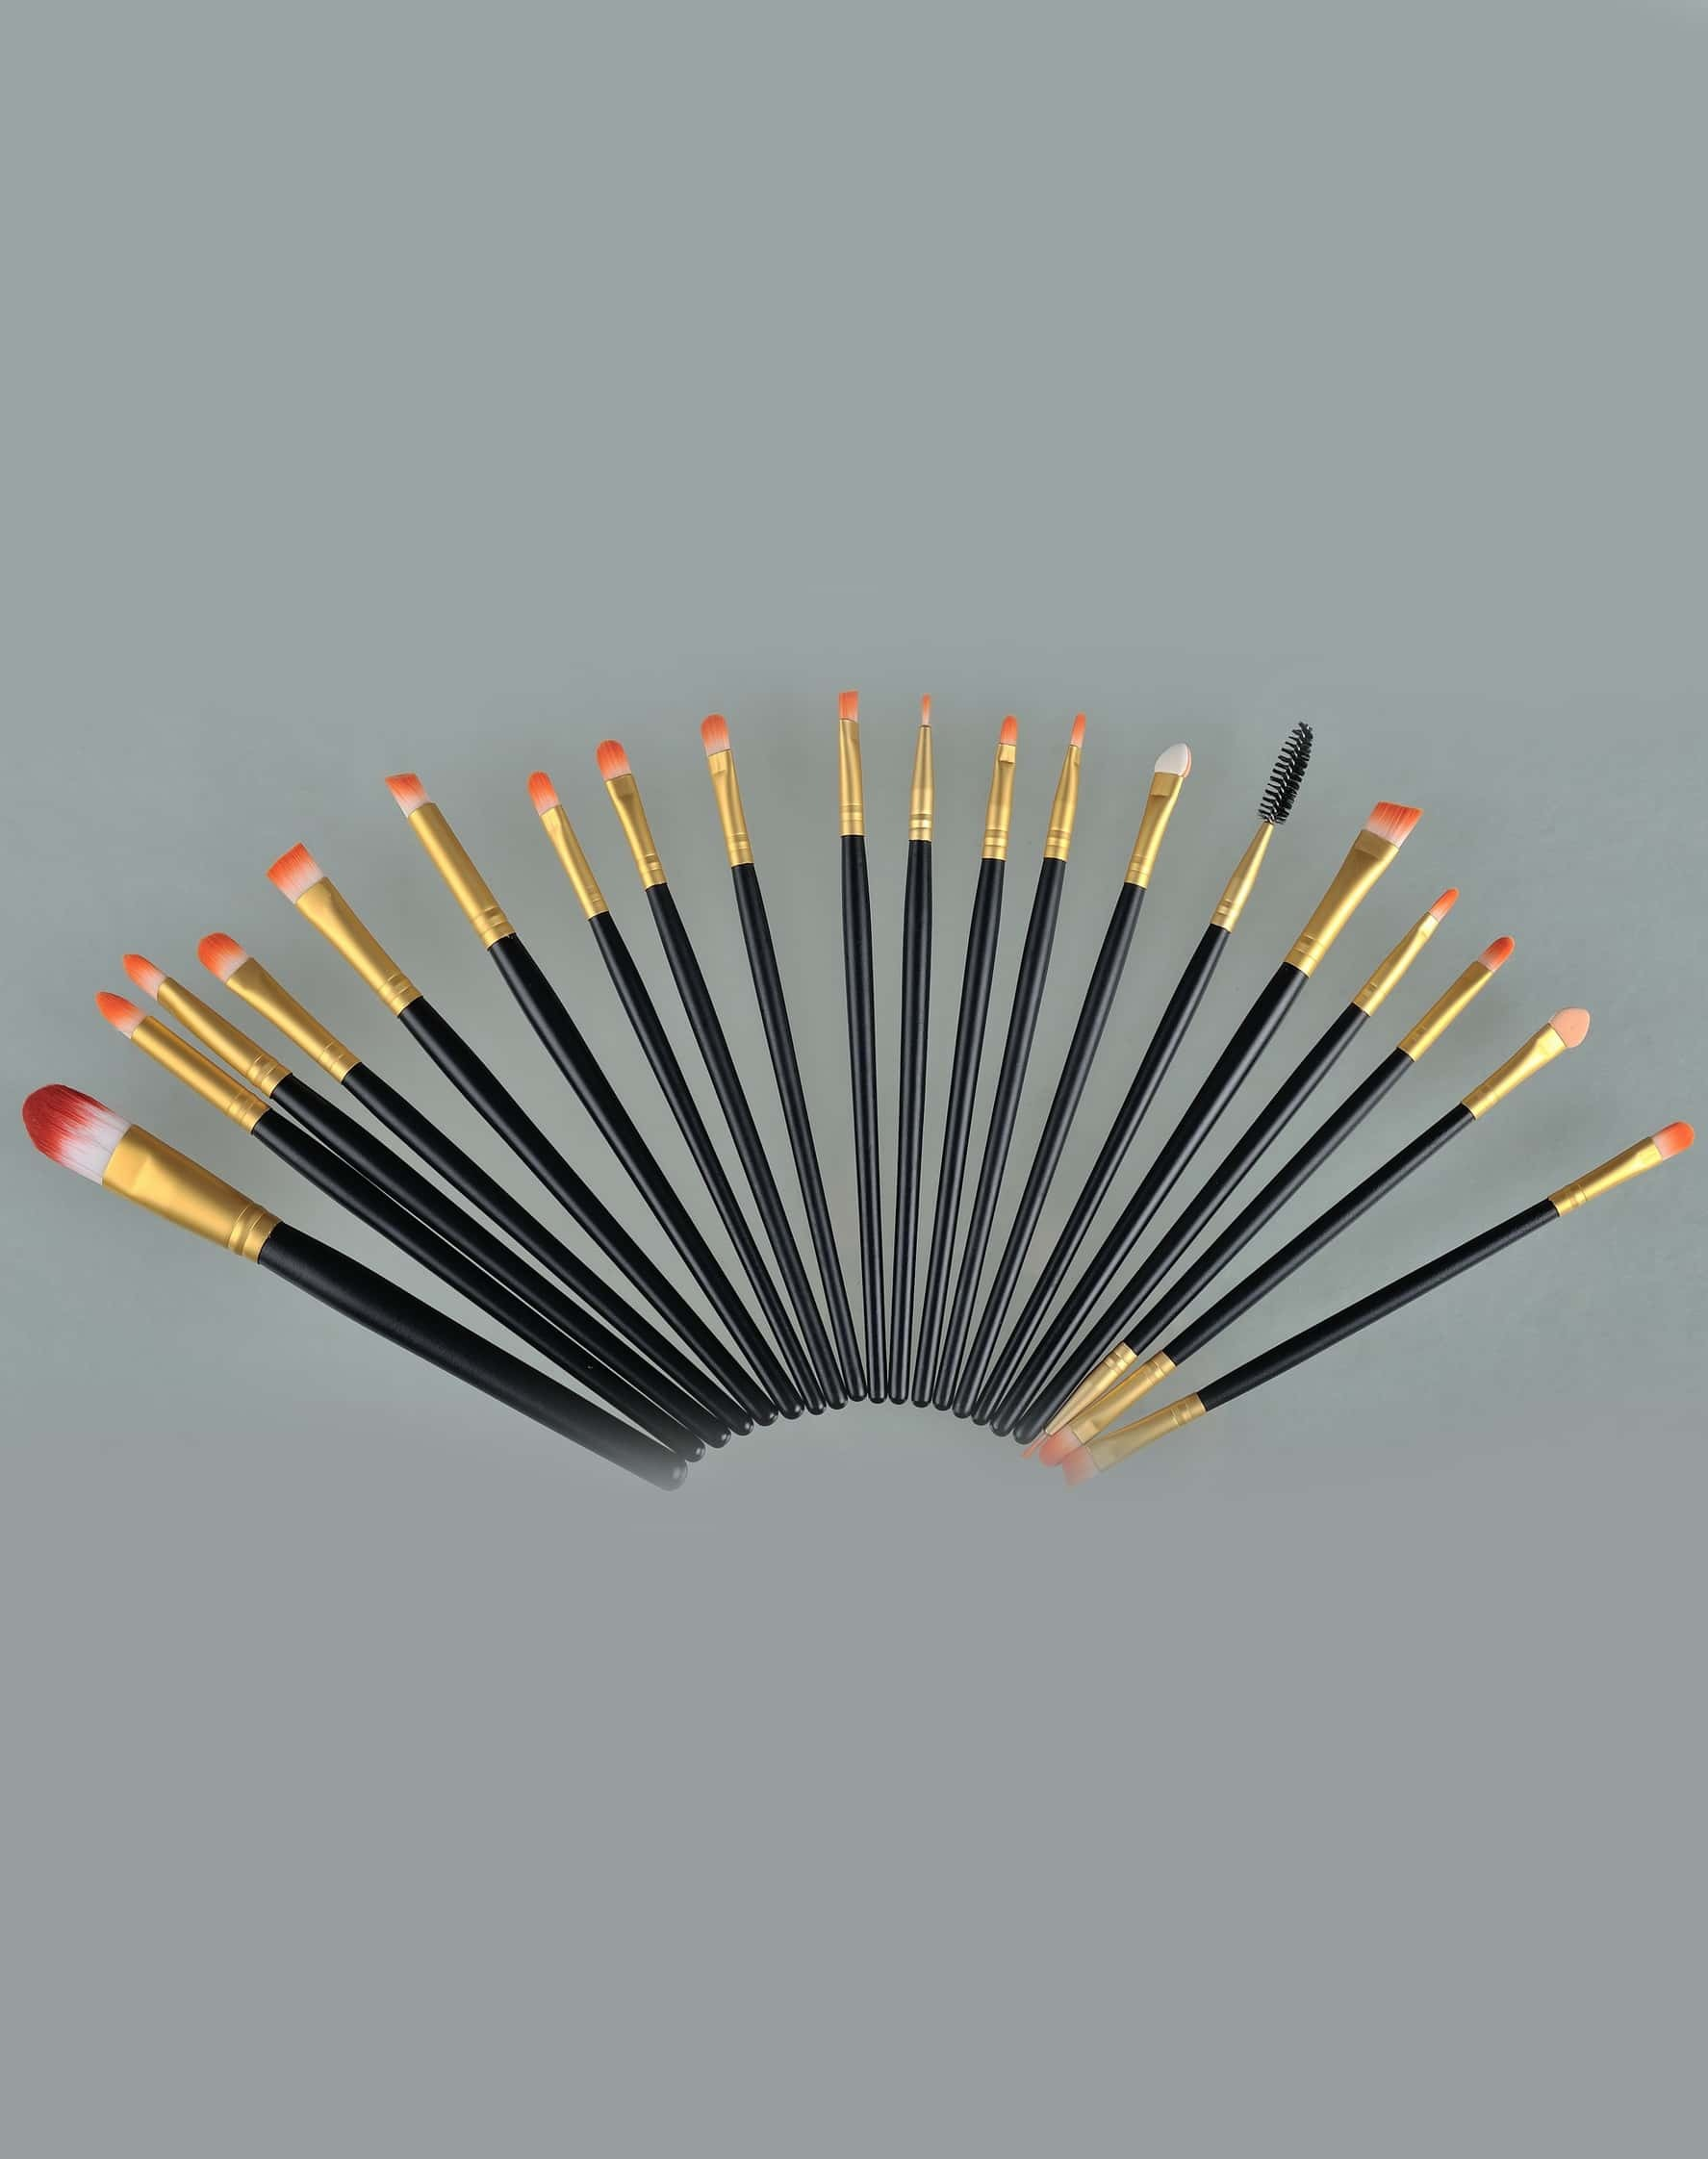 20pcs Makeup Brushes Set Metal Make Up Brush Set-Black